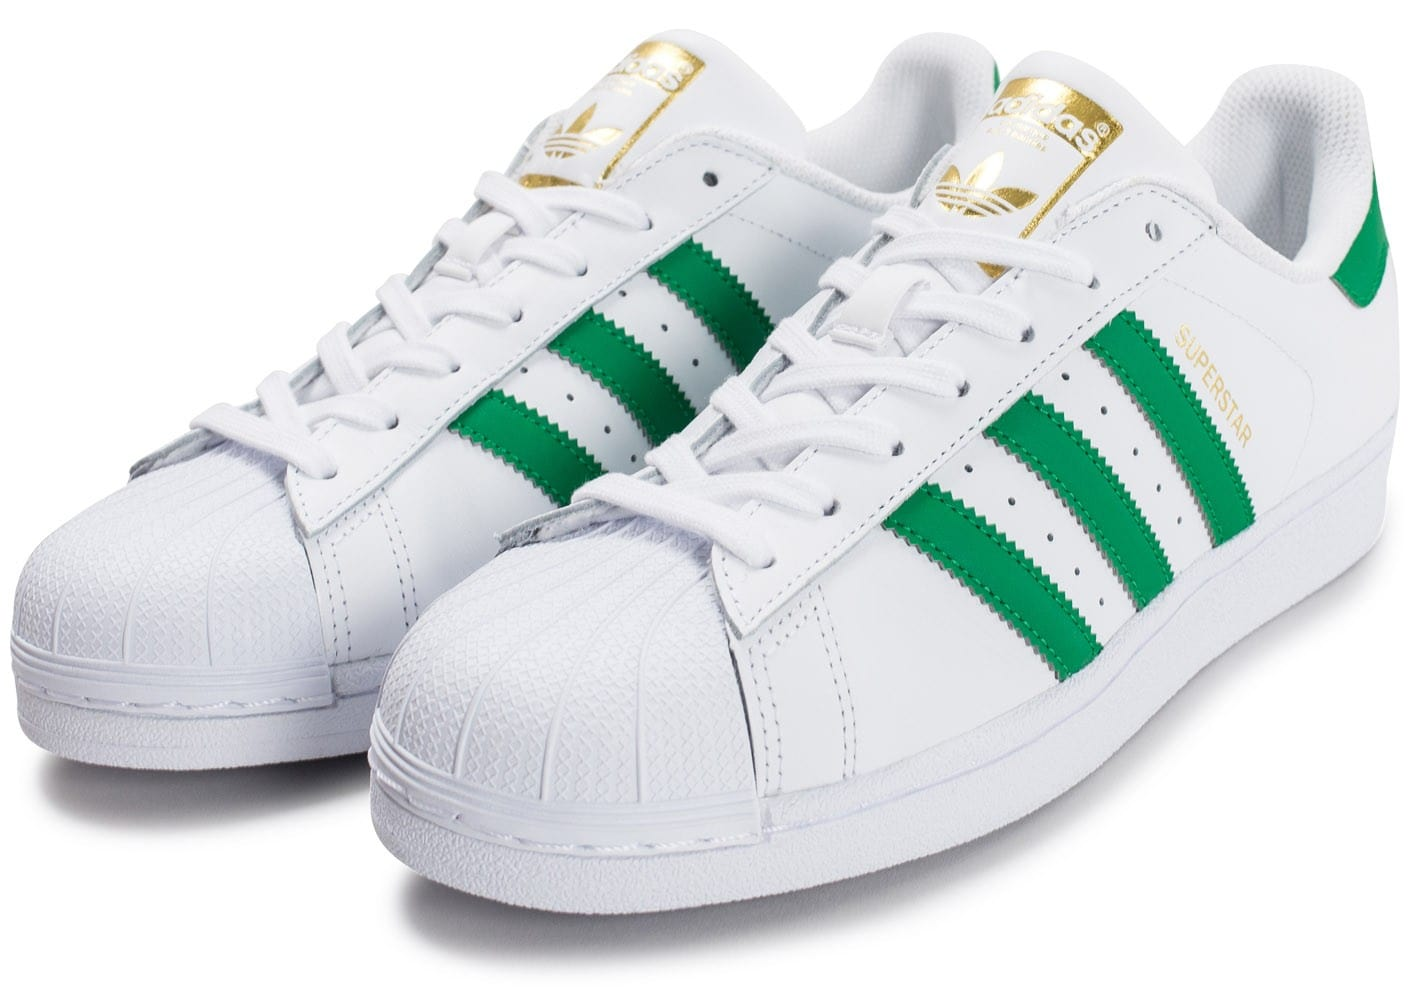 Chaussures Homme Adidas Superstar Snap Foundation Vert Aqaw6spc Et Blanc O0knwP